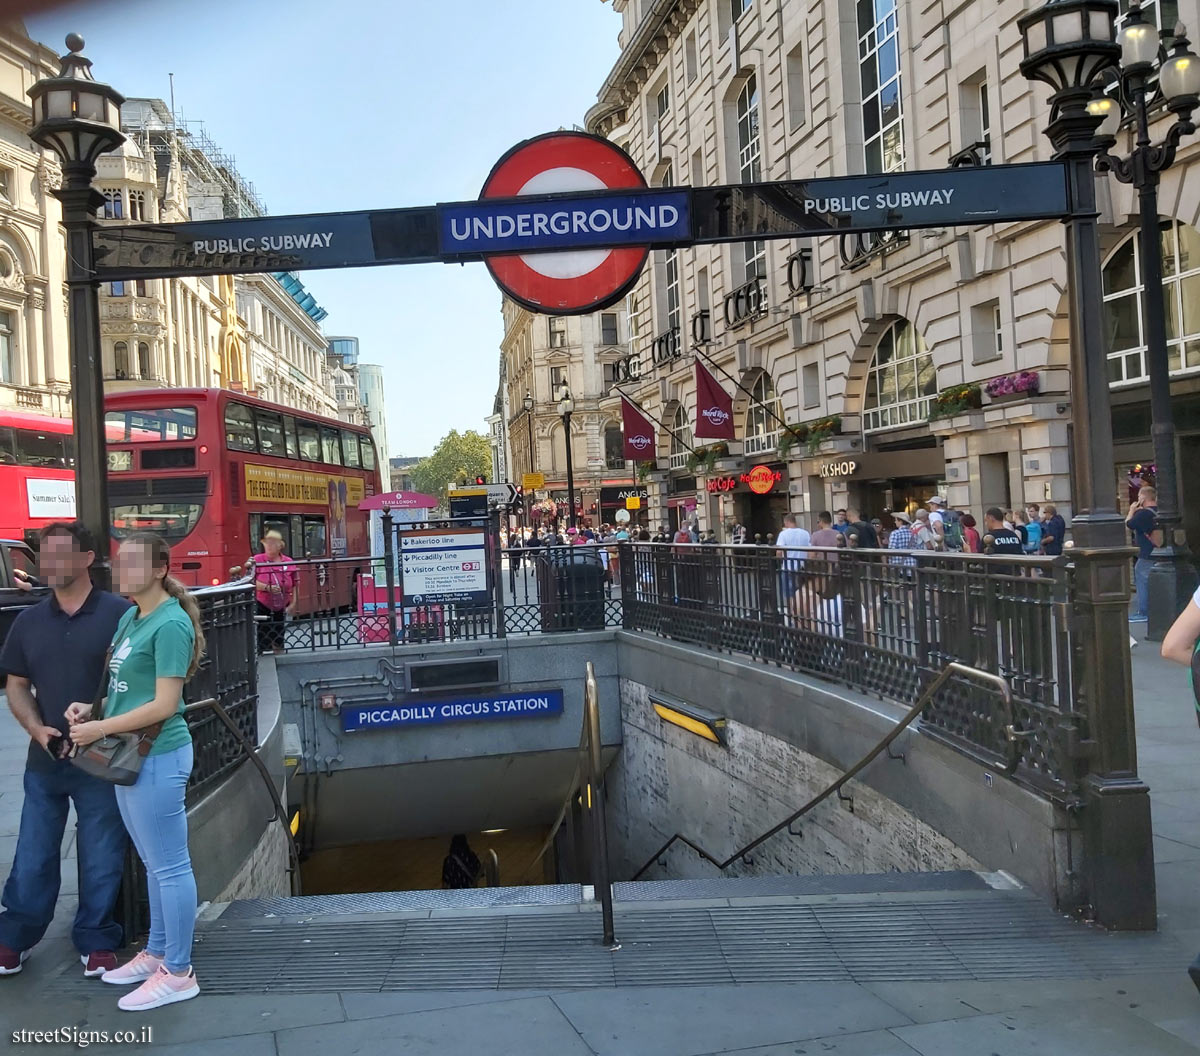 London Underground - Entrance to Piccadilly Circus Station